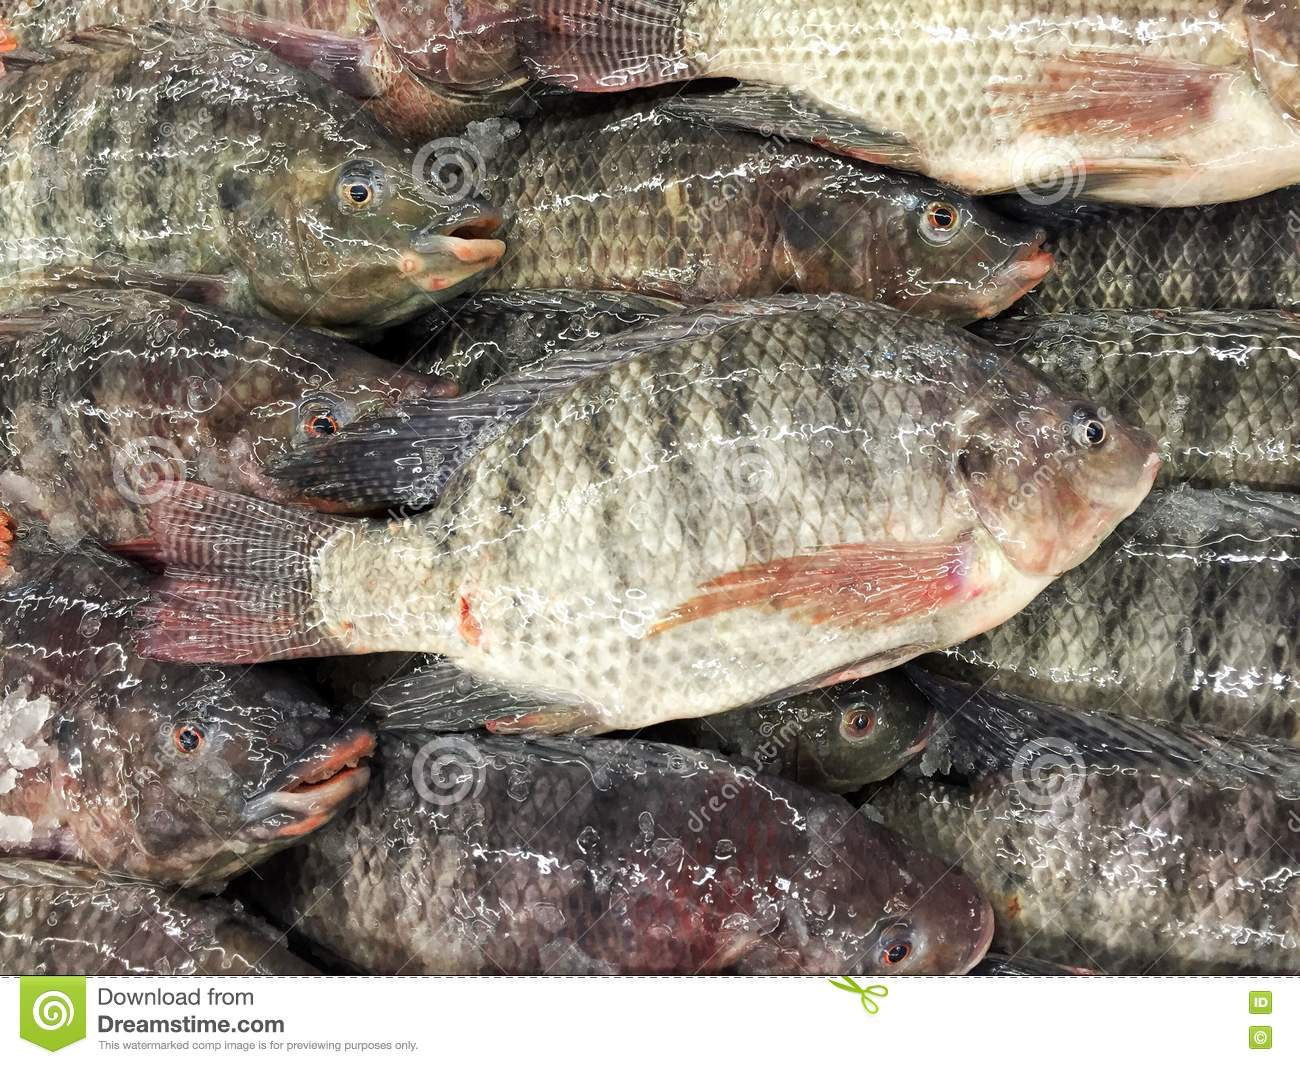 Fresh nile tilapia fish in fish market stock photo image for What type of fish is tilapia